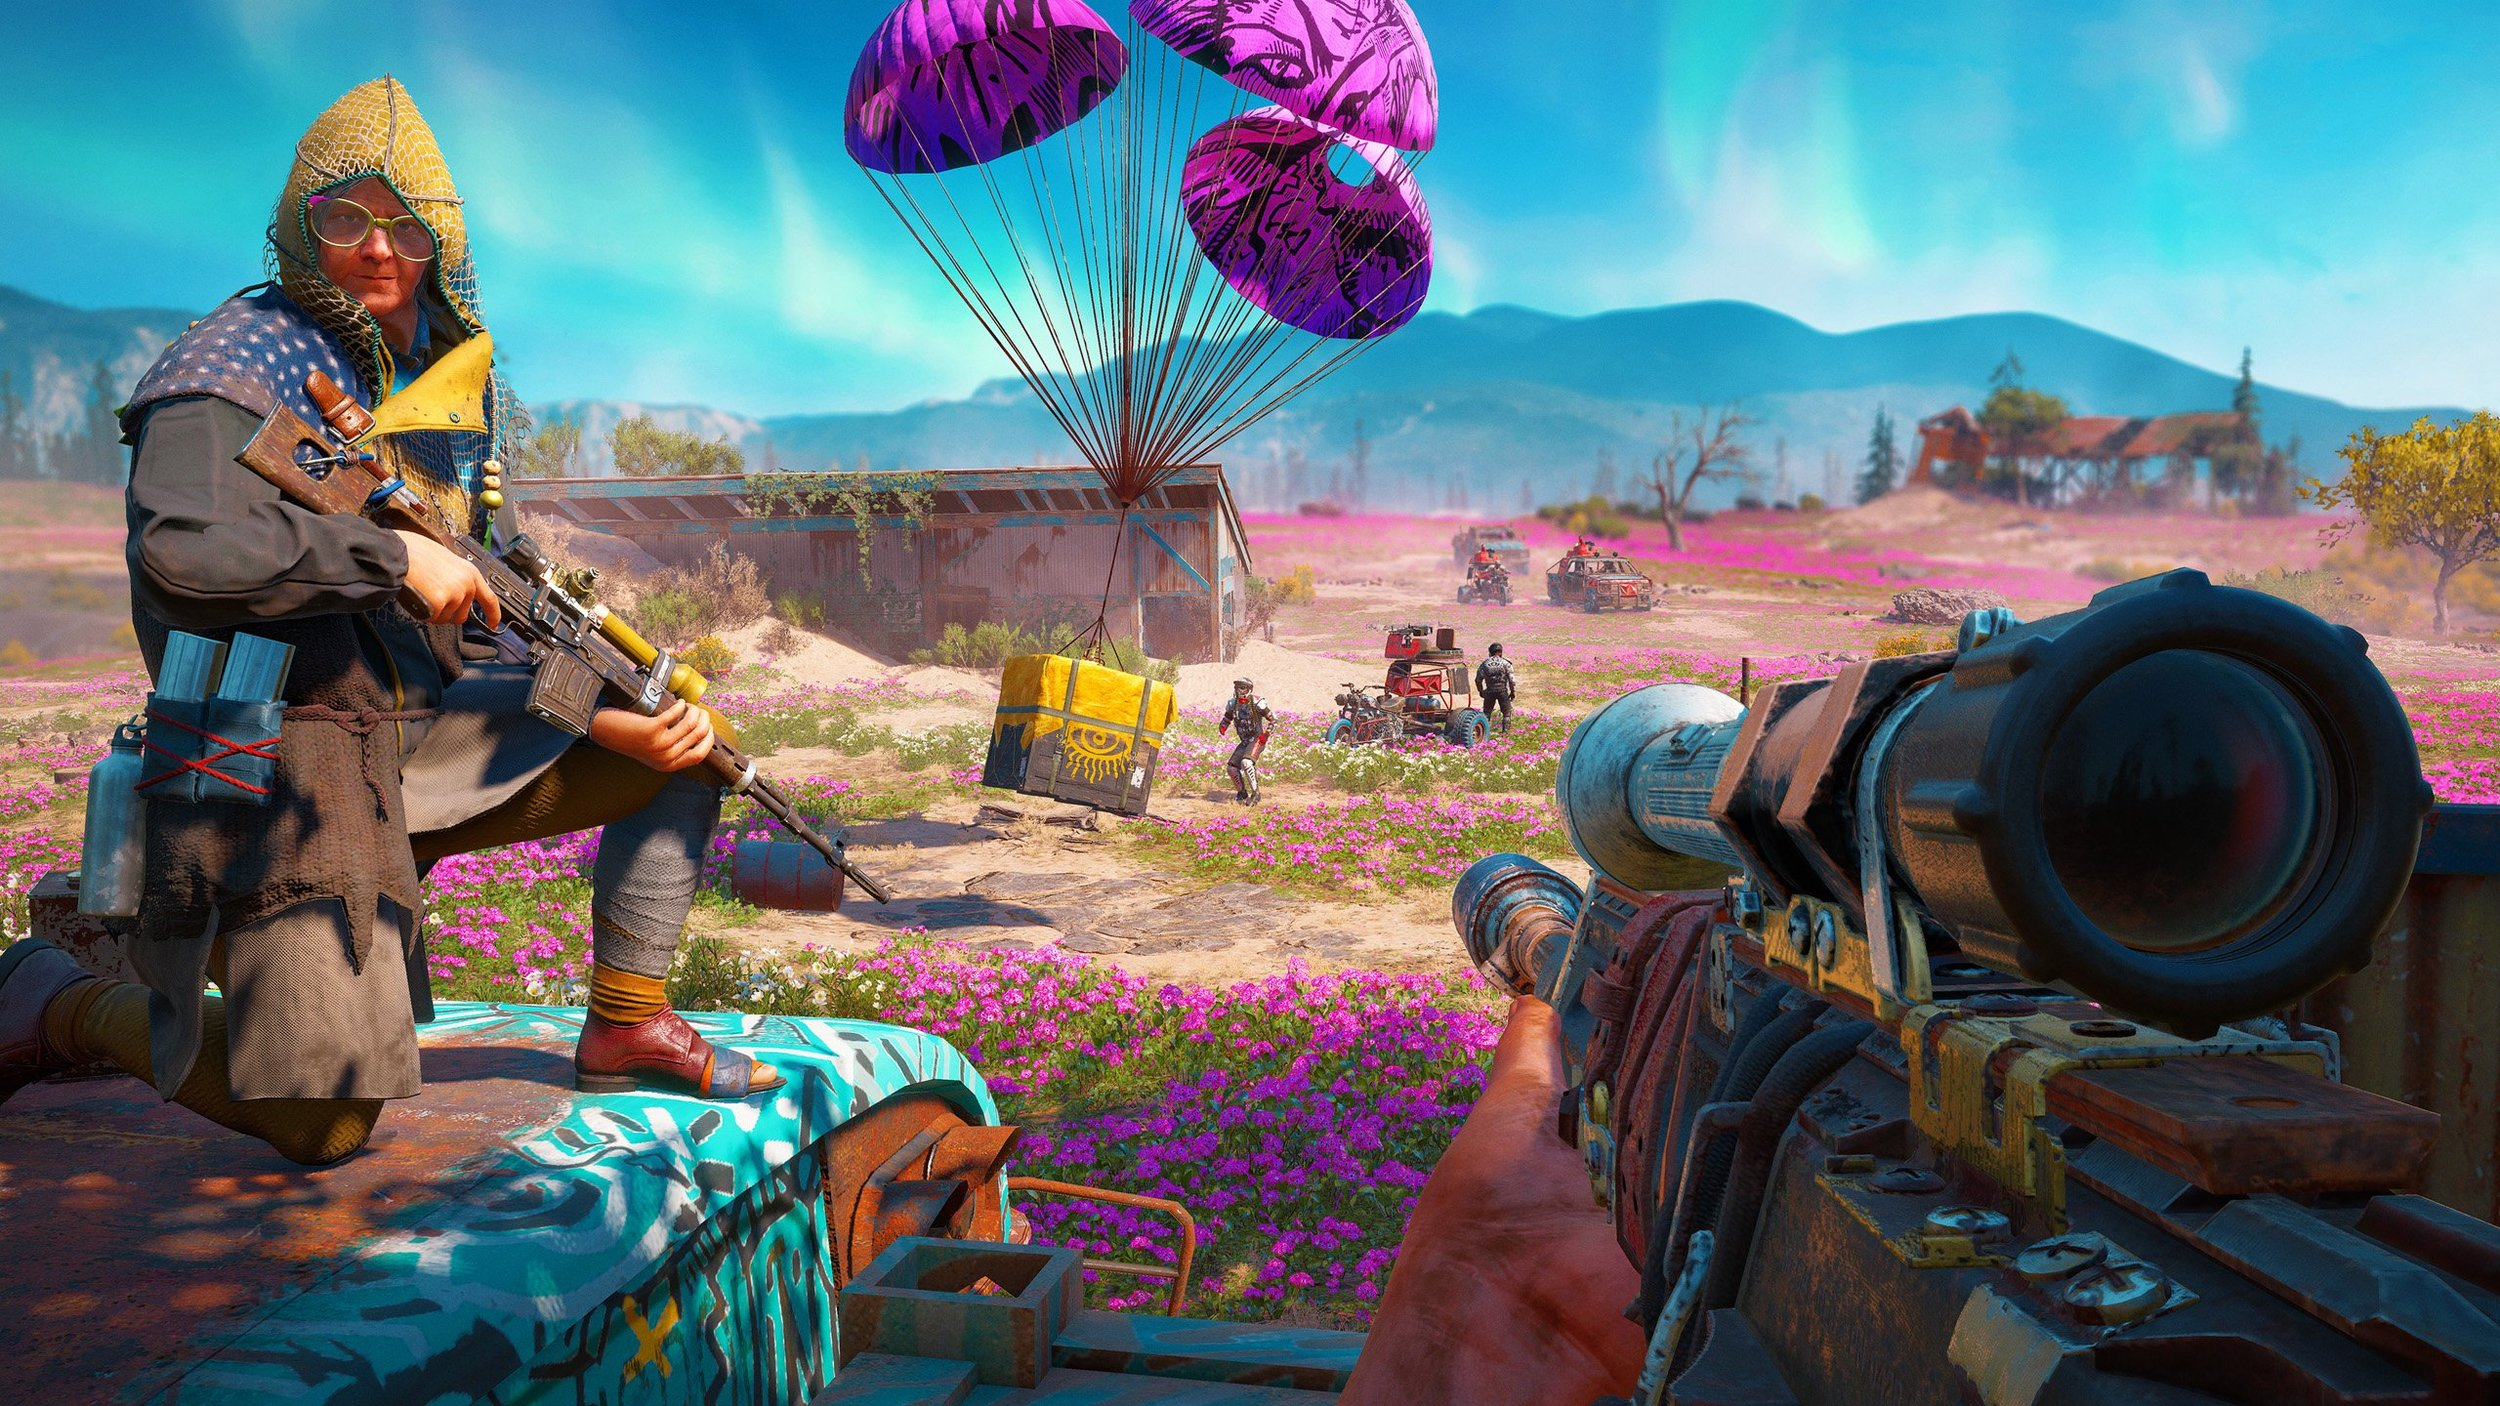 Far Cry: New Dawn, the latest entry in the franchise is now available on PS4, Xbox One, and PC.